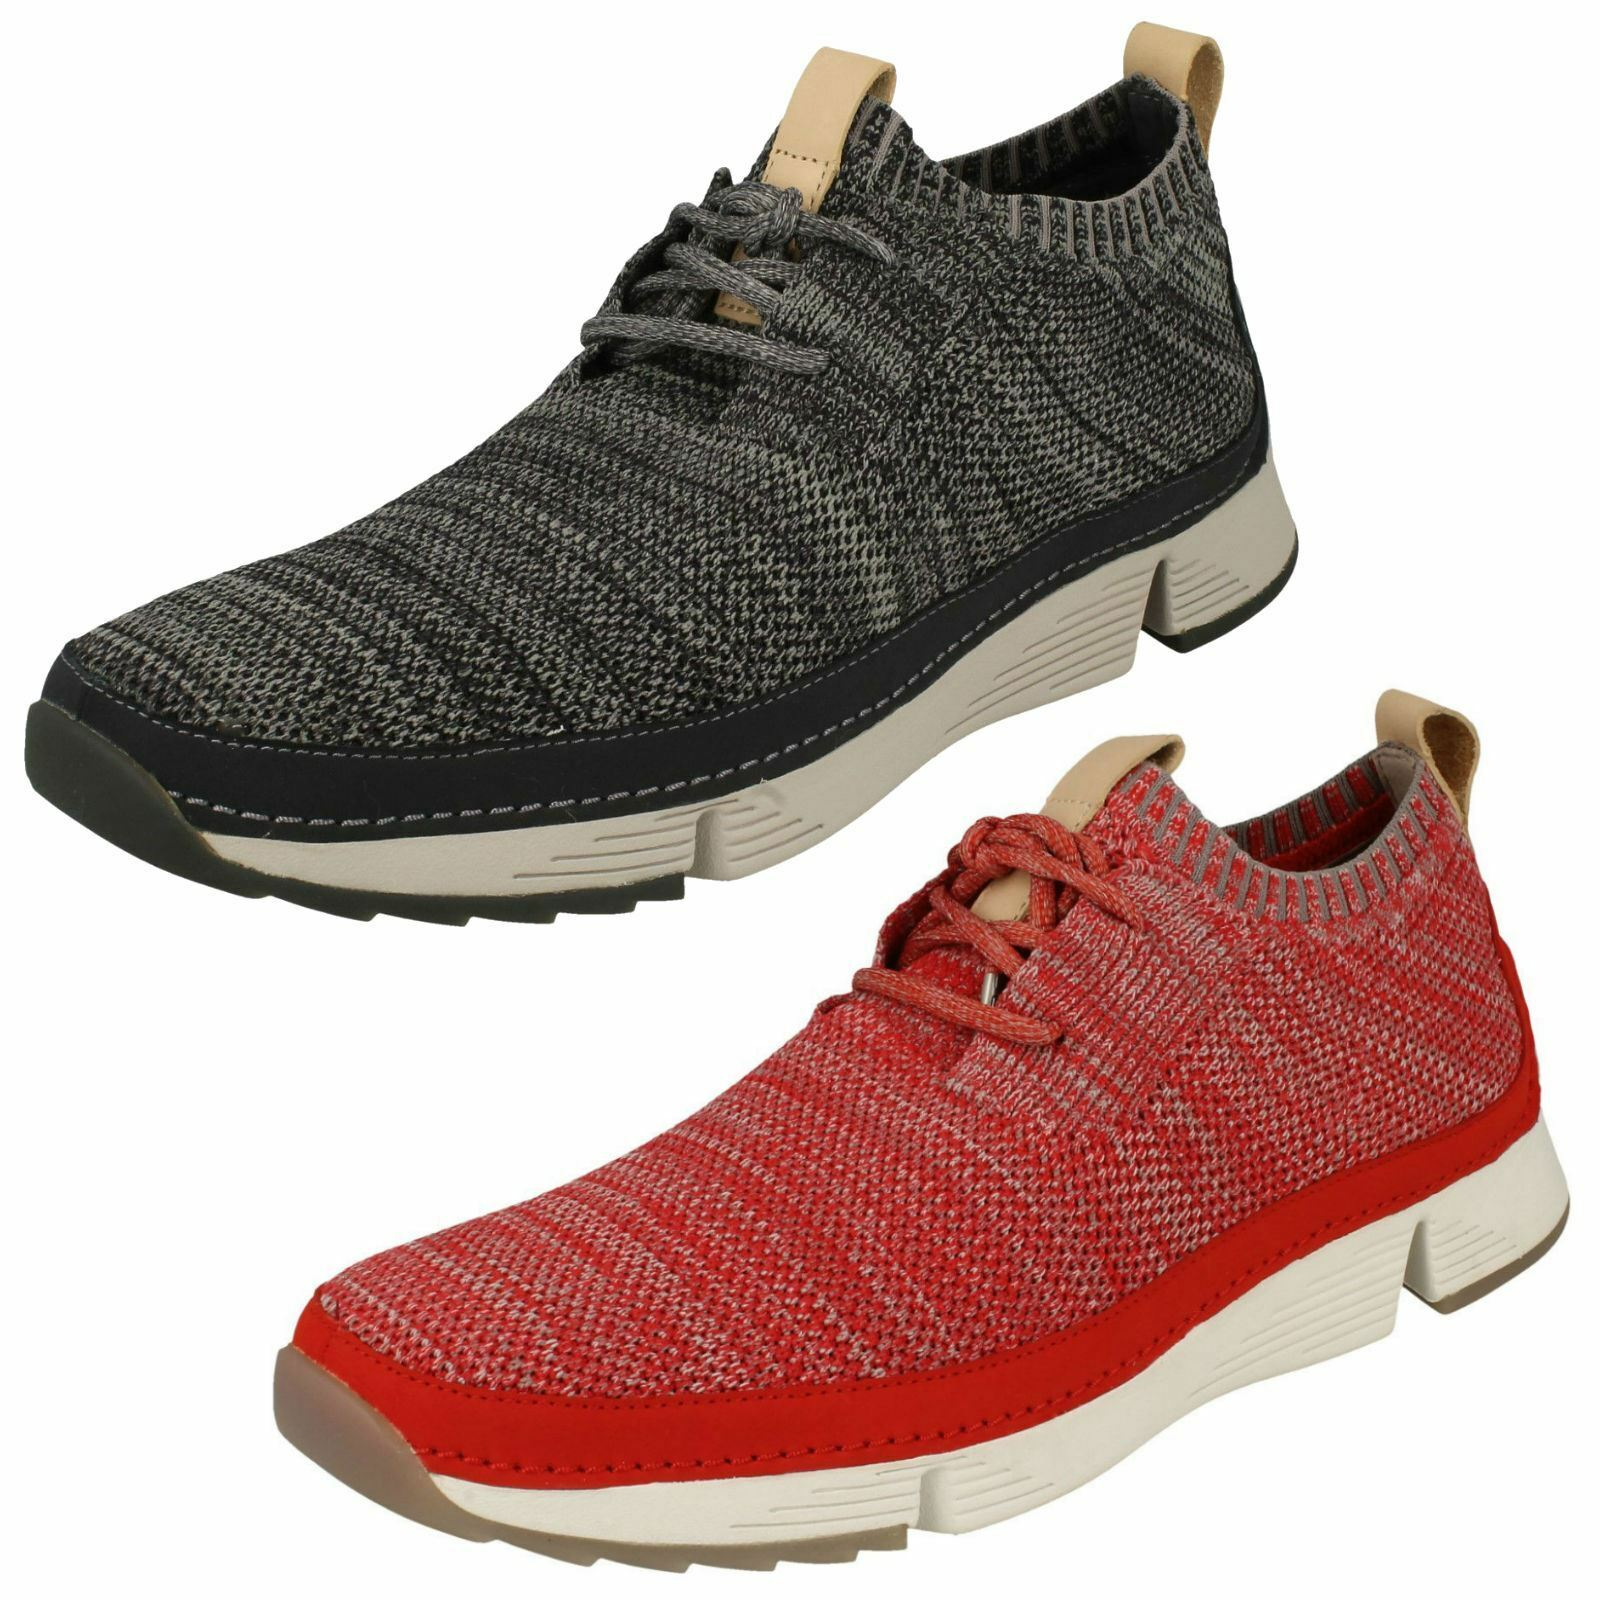 Mens Clarks Casual Lace Up Trainers - Tri Native